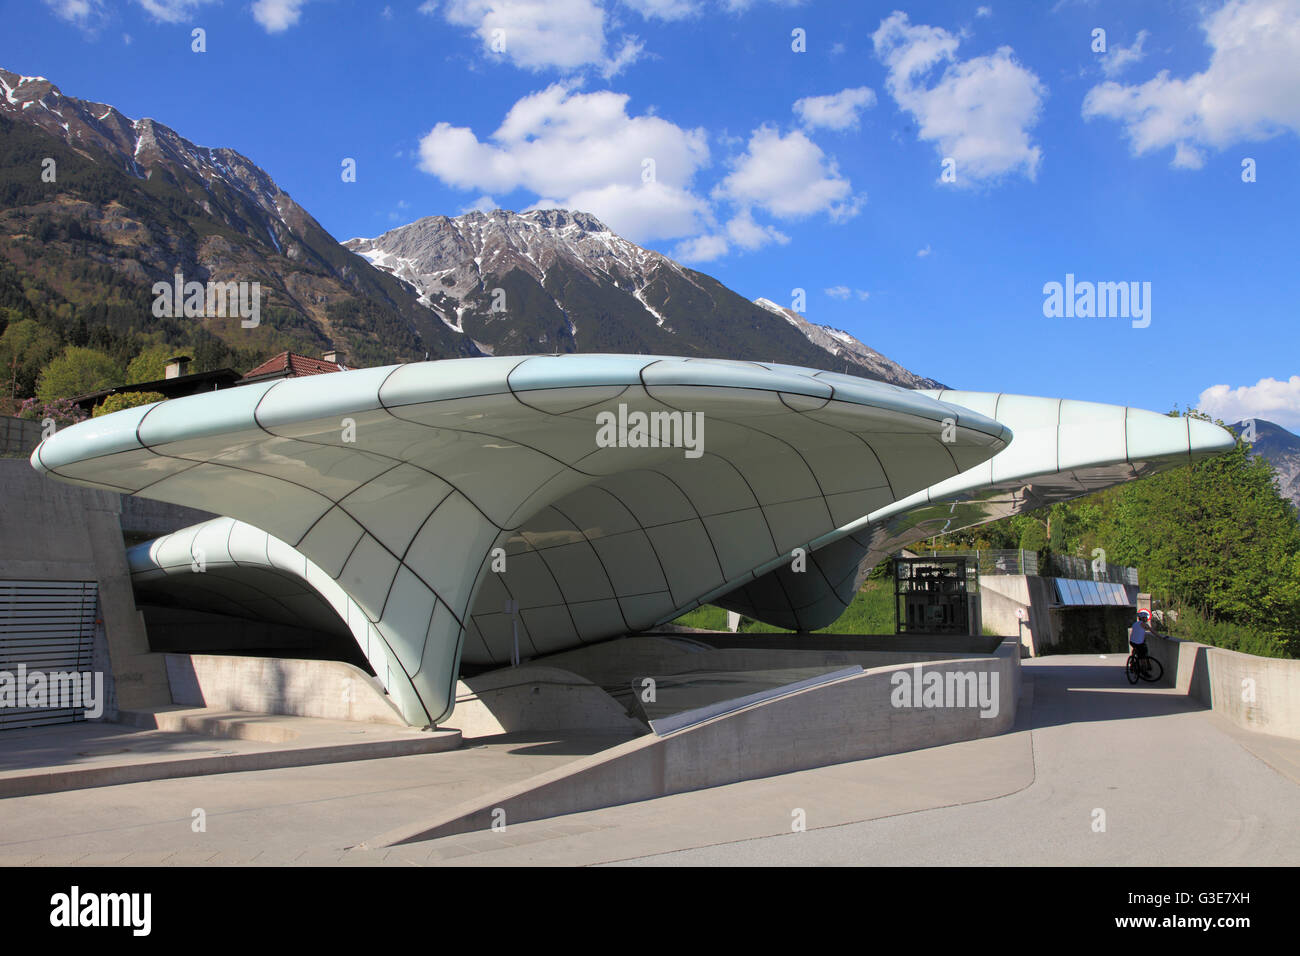 sterreich tirol innsbruck hungerburg seilbahn station architektin zaha hadid stockfoto. Black Bedroom Furniture Sets. Home Design Ideas